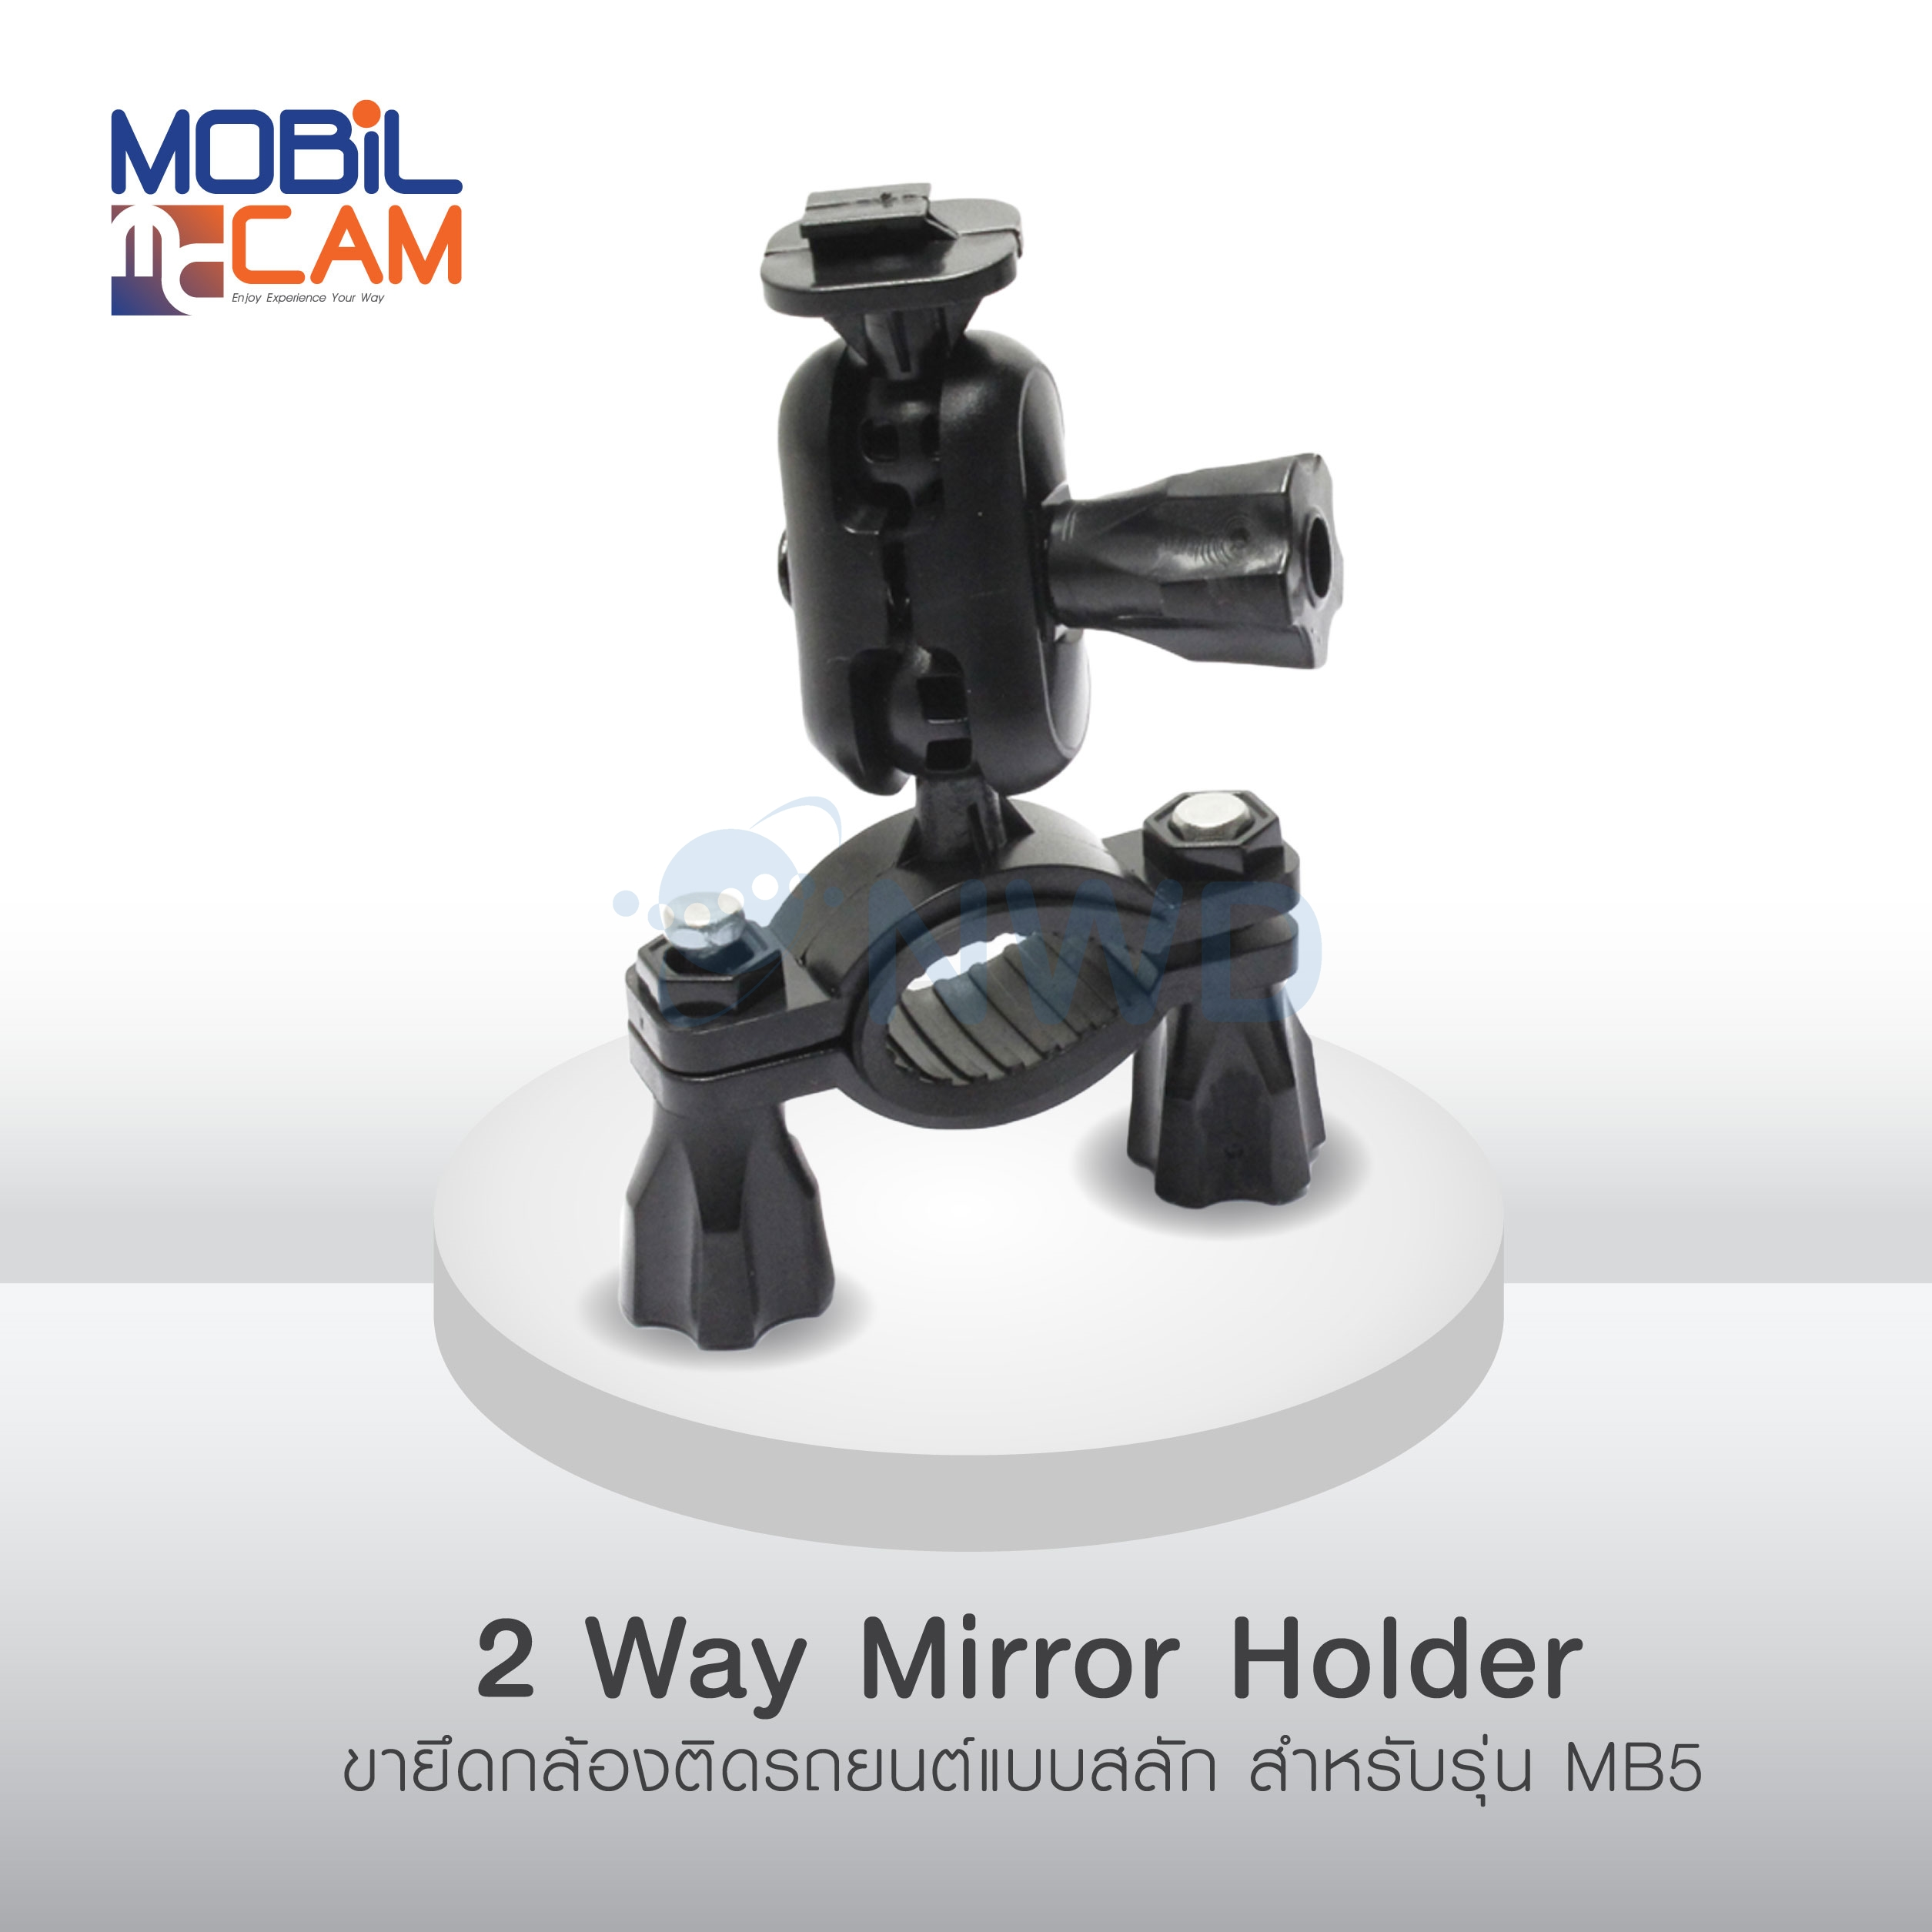 2 Way Mirror Holder(MB5)